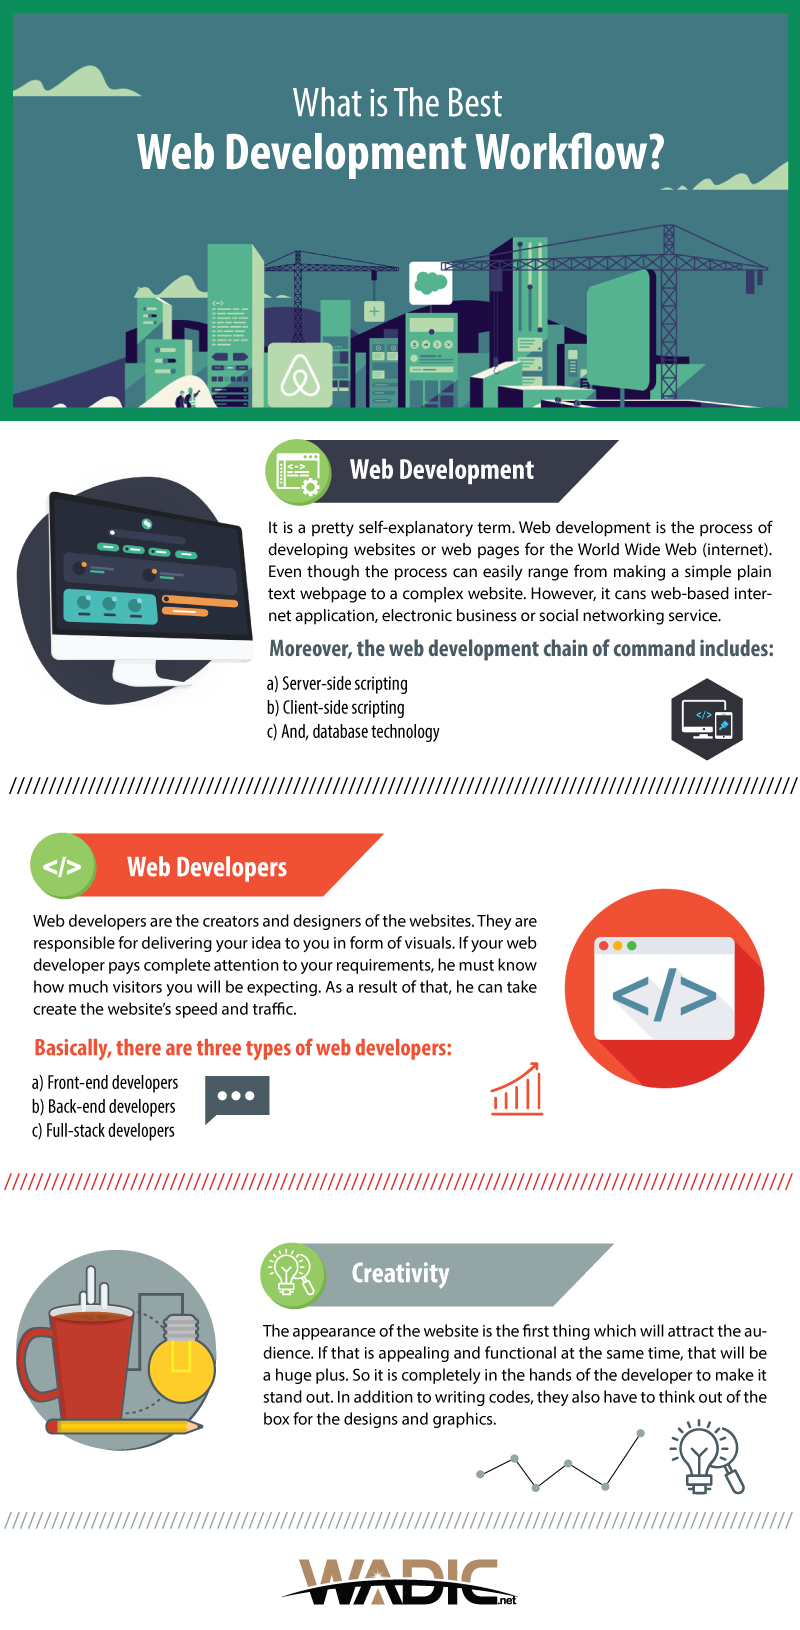 workflow of web development